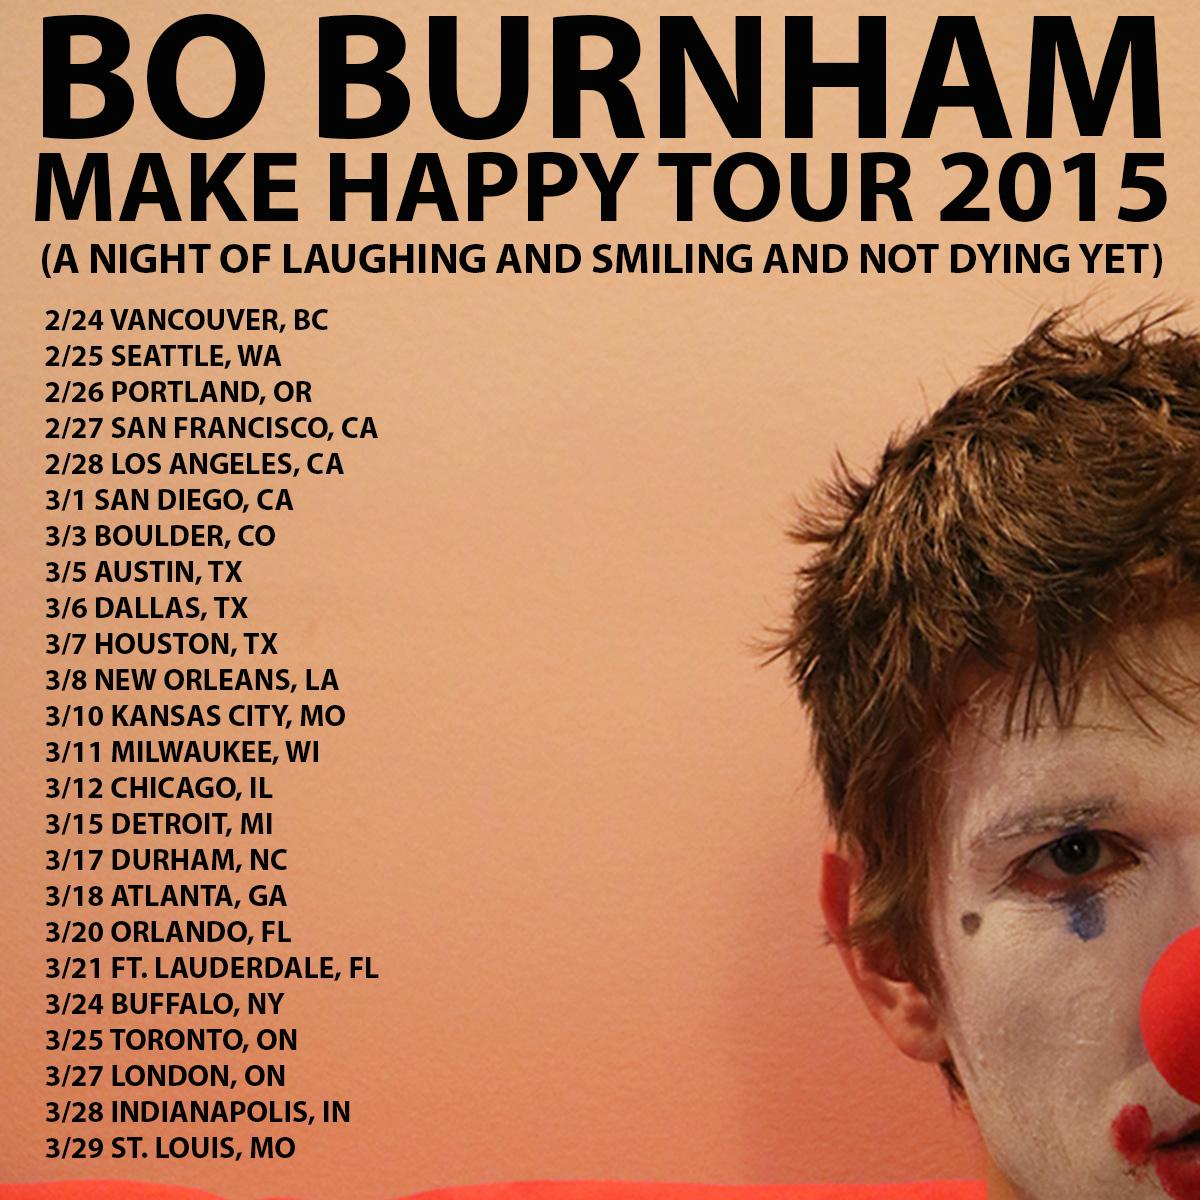 RT @boburnham: PRESALE for the tour is tomorrow, noon local time. Password: 'HAPPY' tix at http://t.co/qKyx777Tr4 #cantwait #lotsfun http:/?